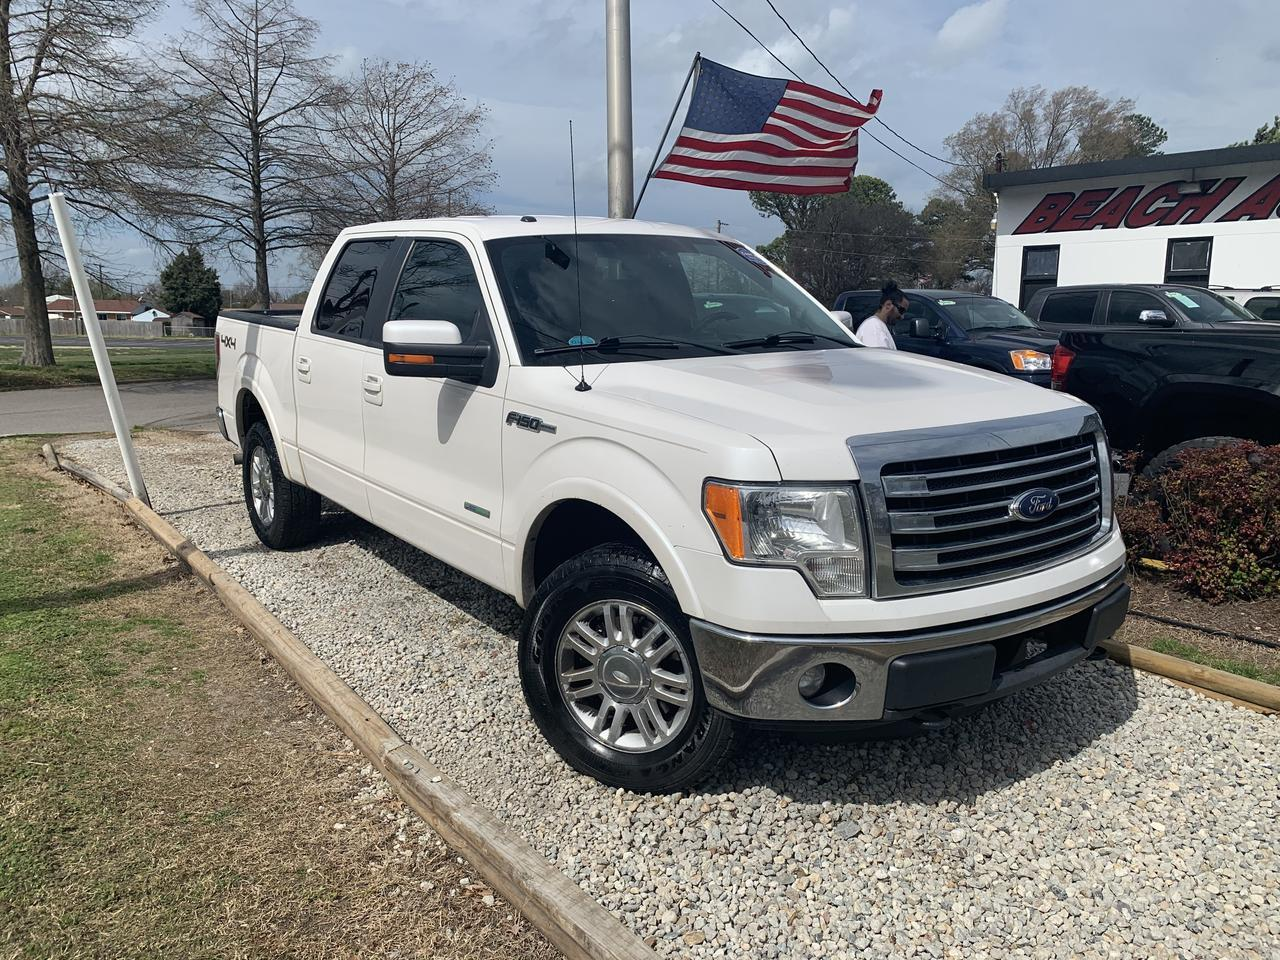 2013 FORD F-150 LARIAT SUPER CREW 4X4, WHOLESALE TO THE PUBLIC, BACKUP CAM, BLUETOOTH, NAV, HEATED SEATS!